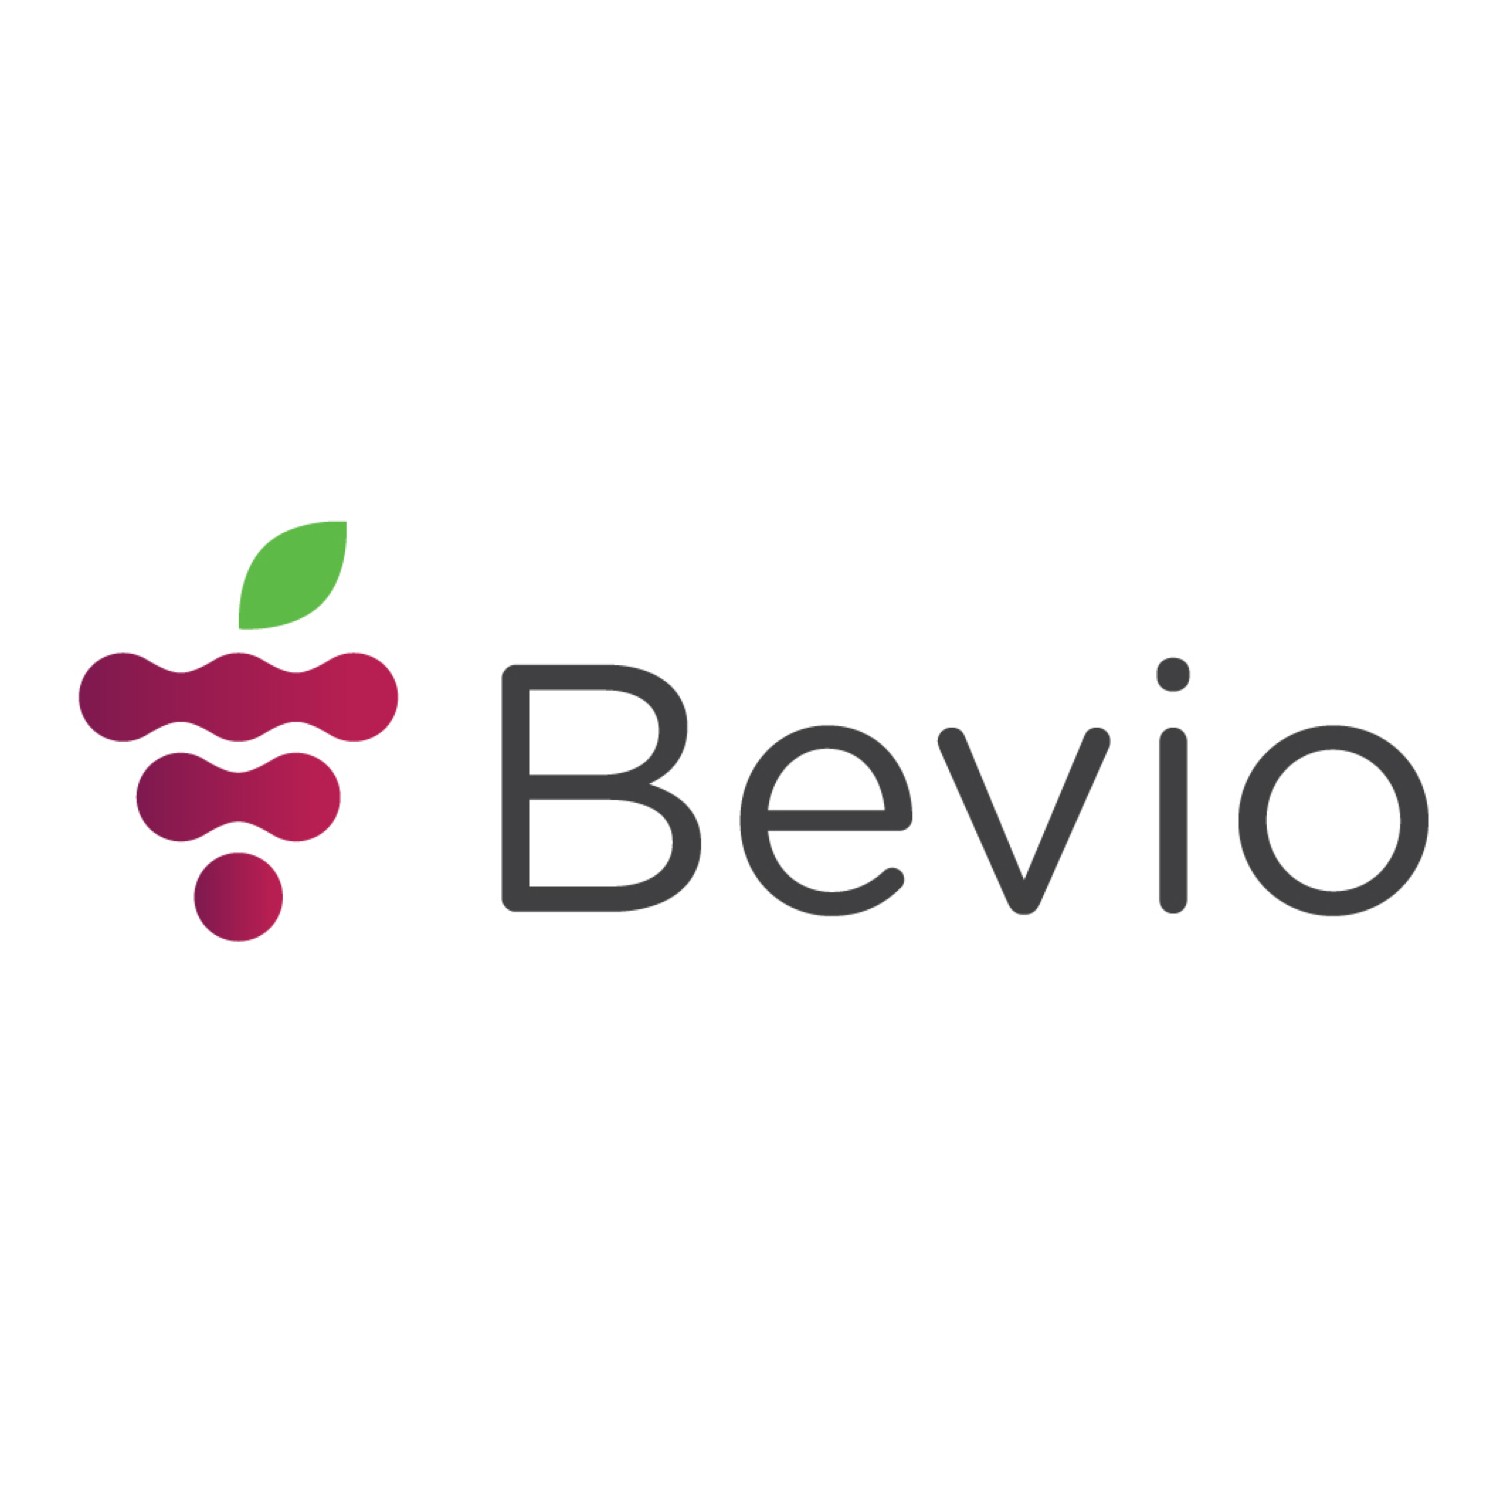 Bevio   Bevio.co is Oklahoma's only legal solution for buying wine, beer and spirits online. Search and shop for that perfect bottle from a marketplace of local retailers. Explore something new through our Sommelier curated features.